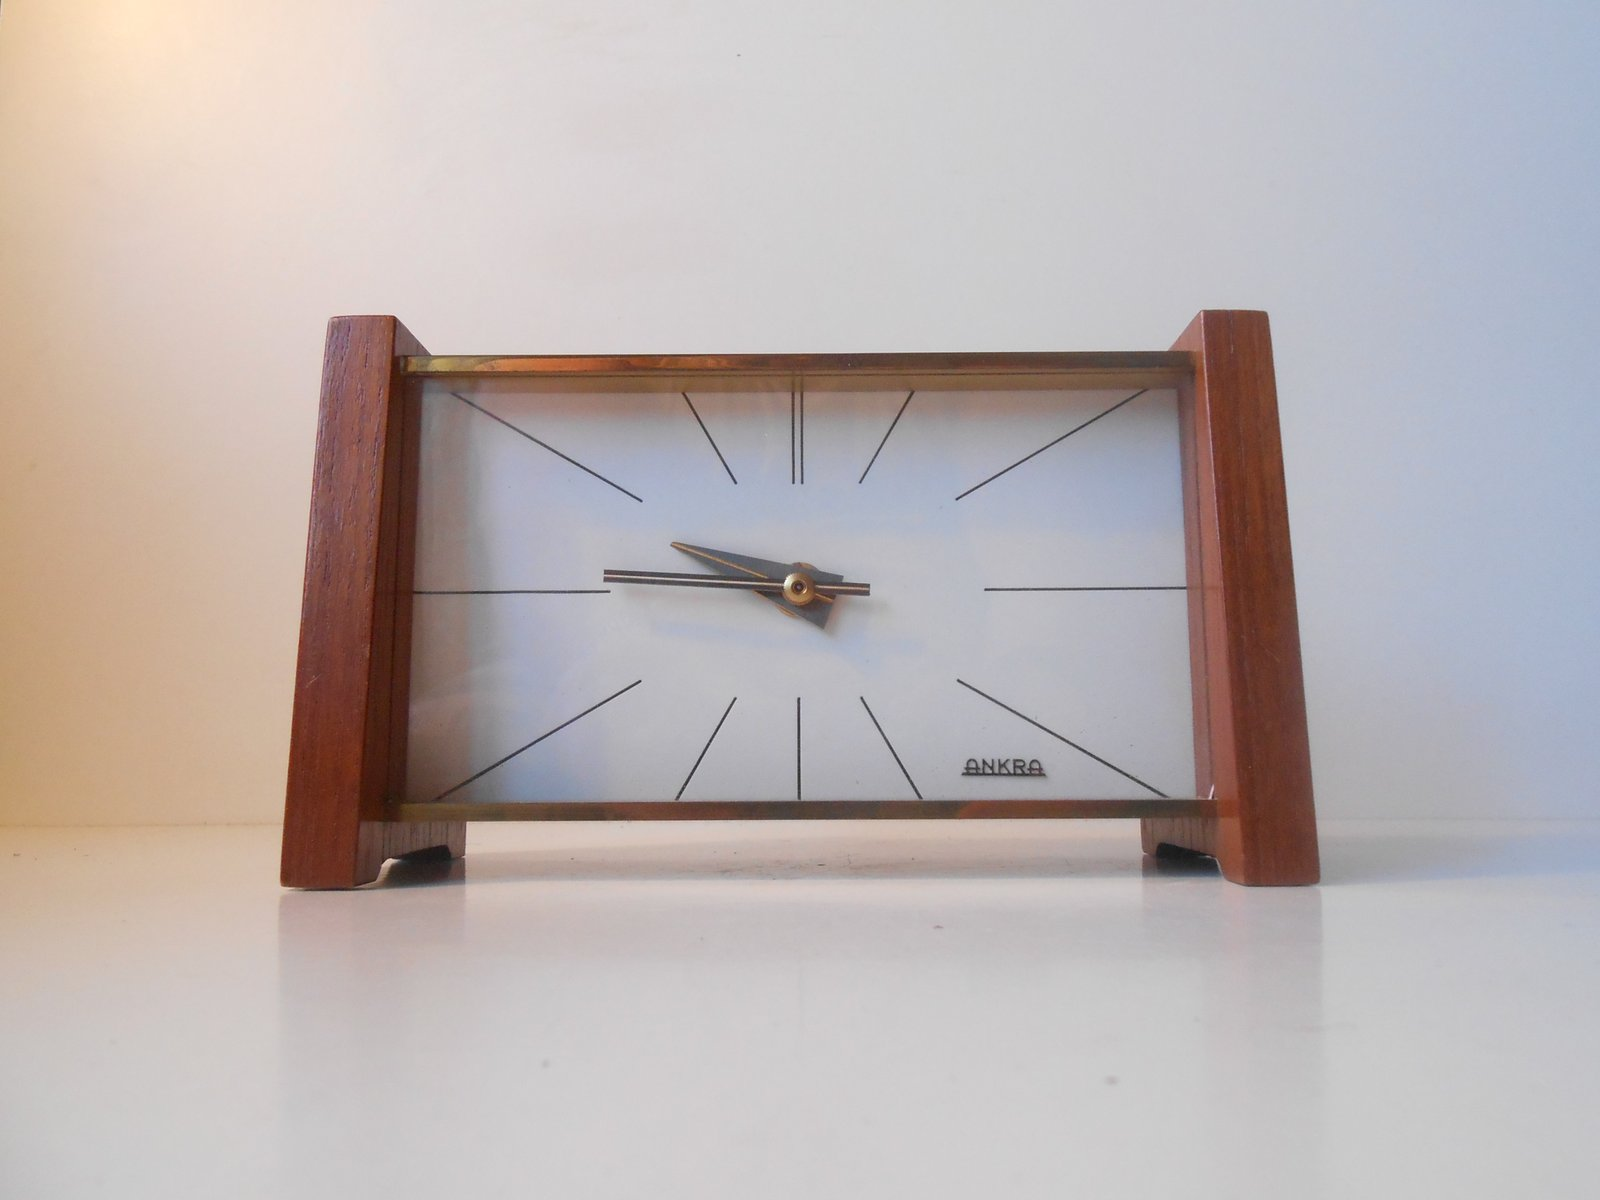 Table Clock Modern Mid Century Modern Table Clock From Ankra For Sale At Pamono